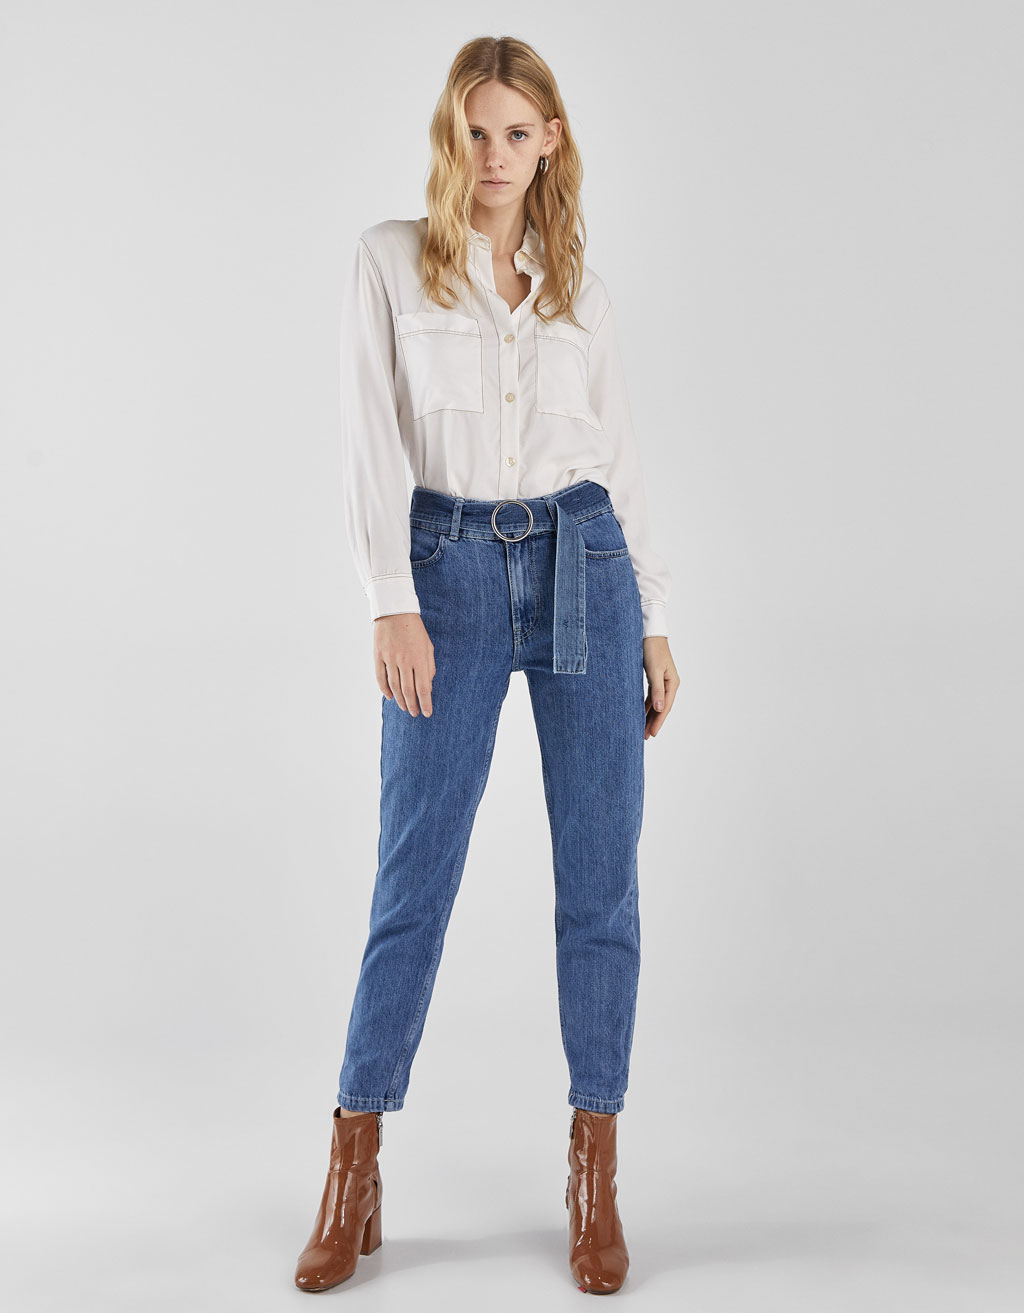 High waist mom jeans with belt